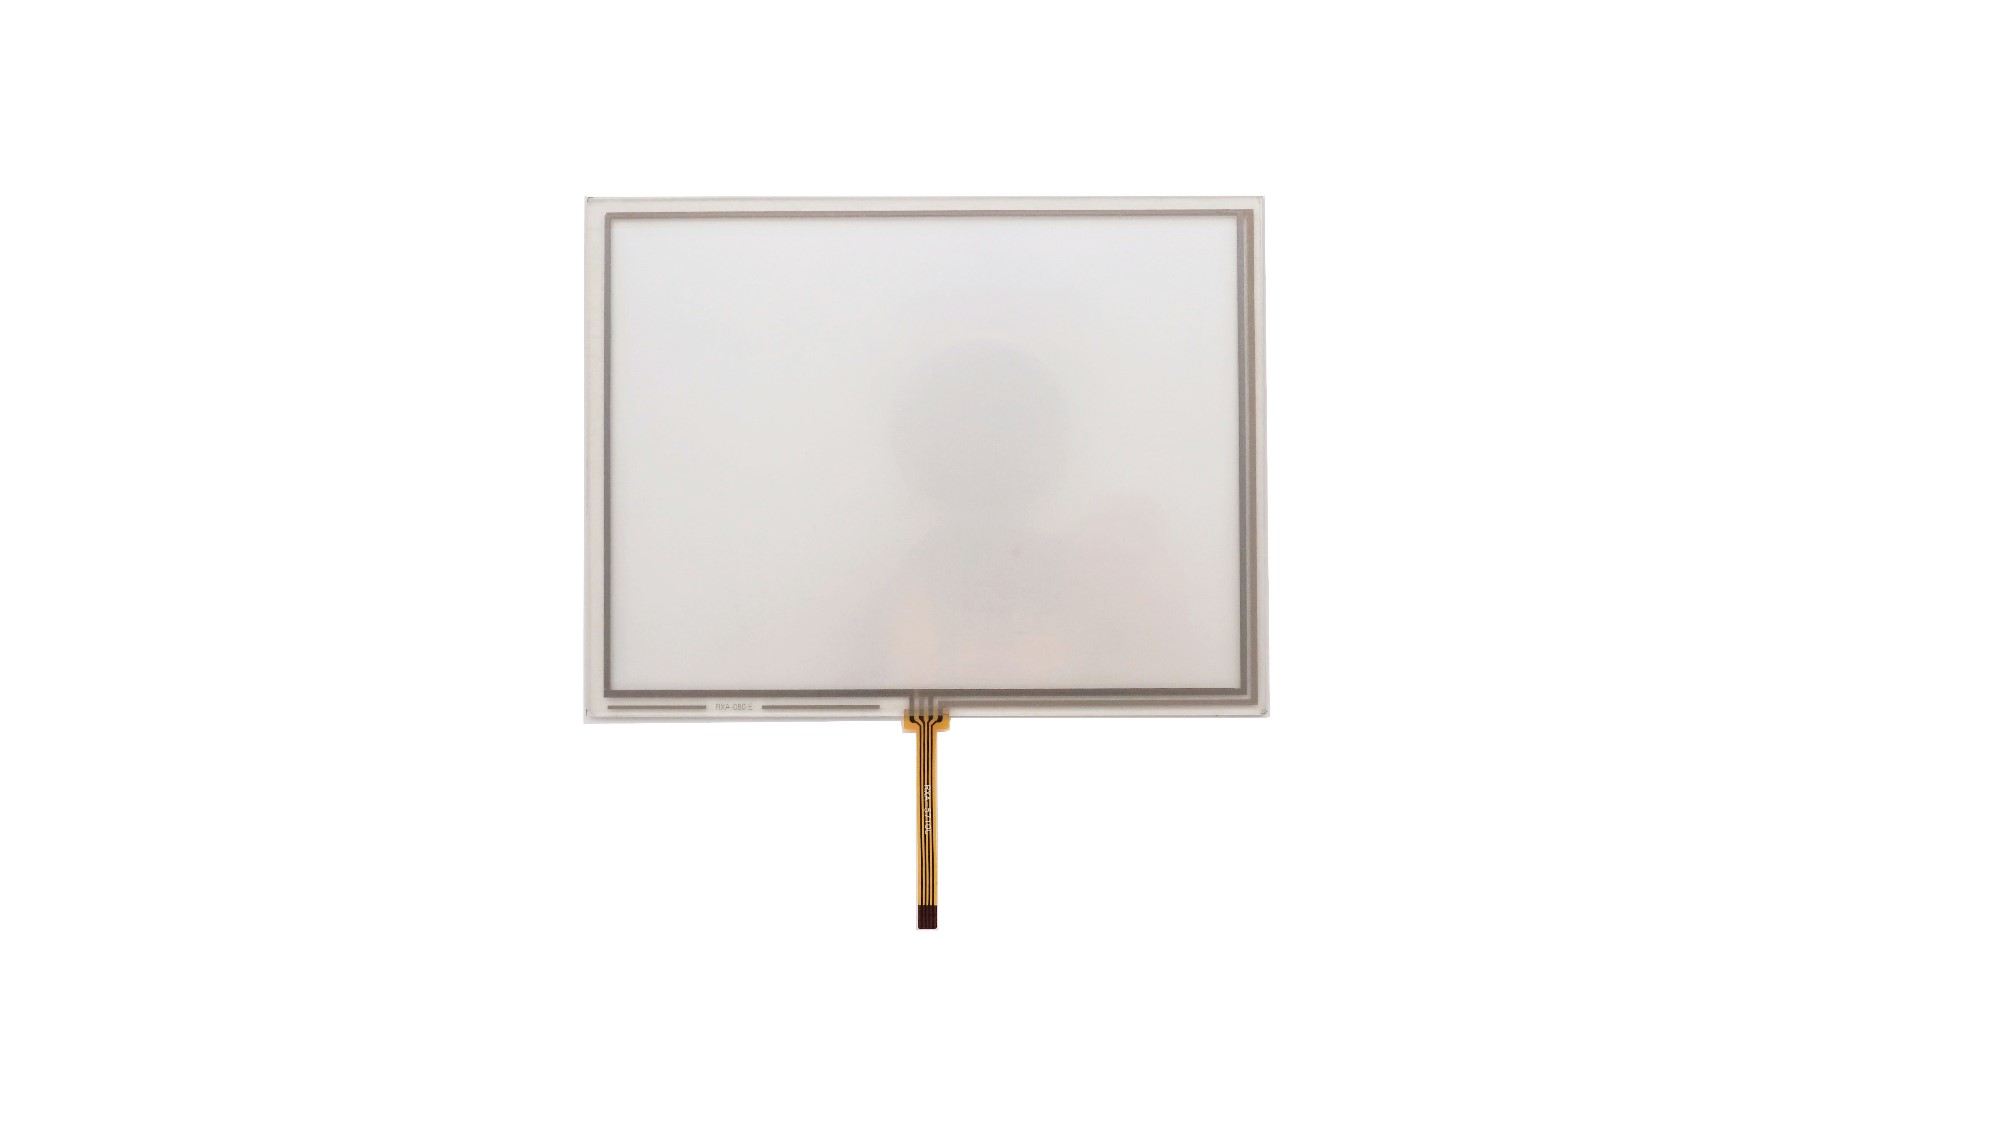 8.0 Inch 4 Wire Resistive Touch Panel Screen